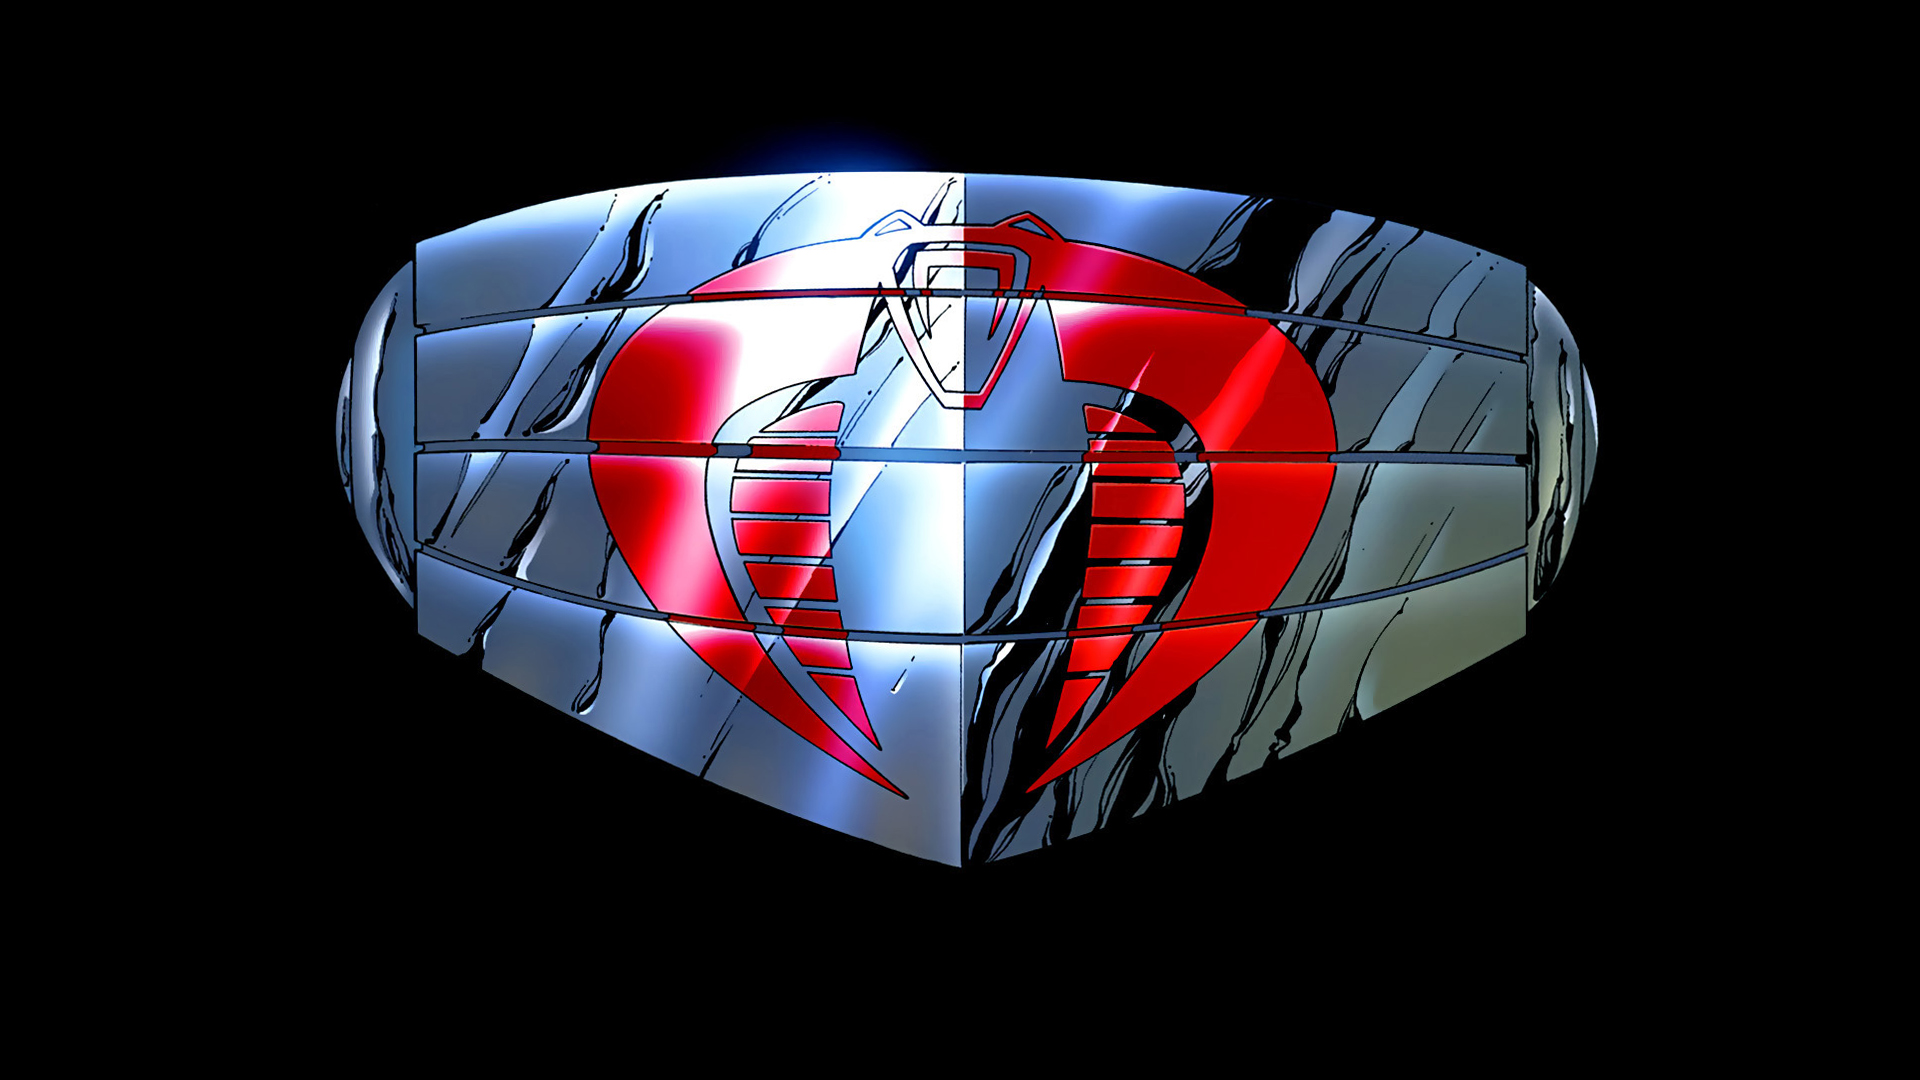 GI Joe Wallpapers ID577946